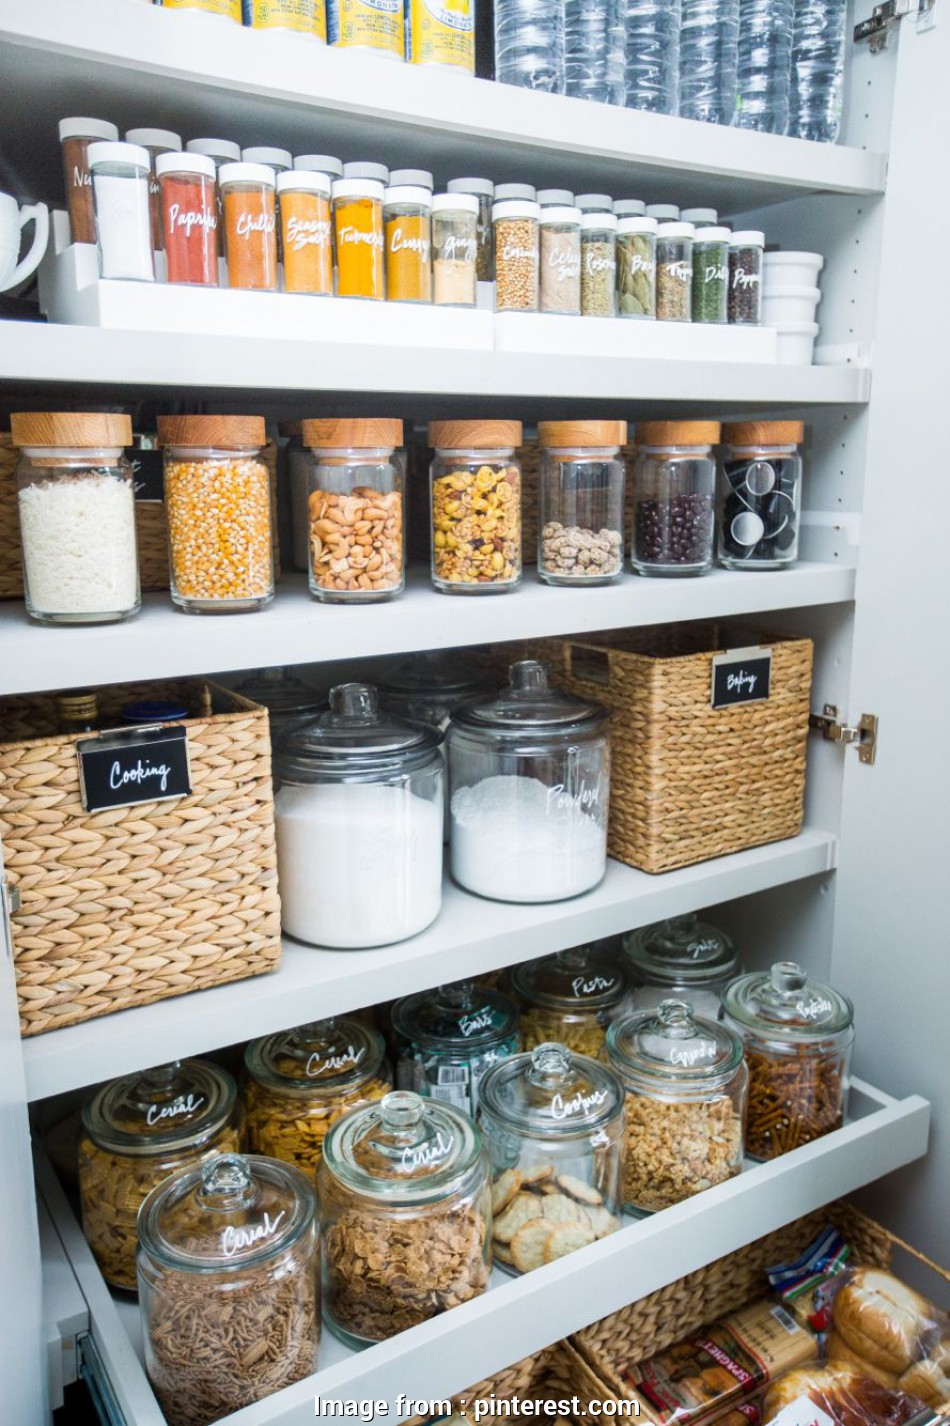 wire pantry storage bins Organised pantry using clever storage solutions such as baskets, jars, clear containers 9 Top Wire Pantry Storage Bins Pictures